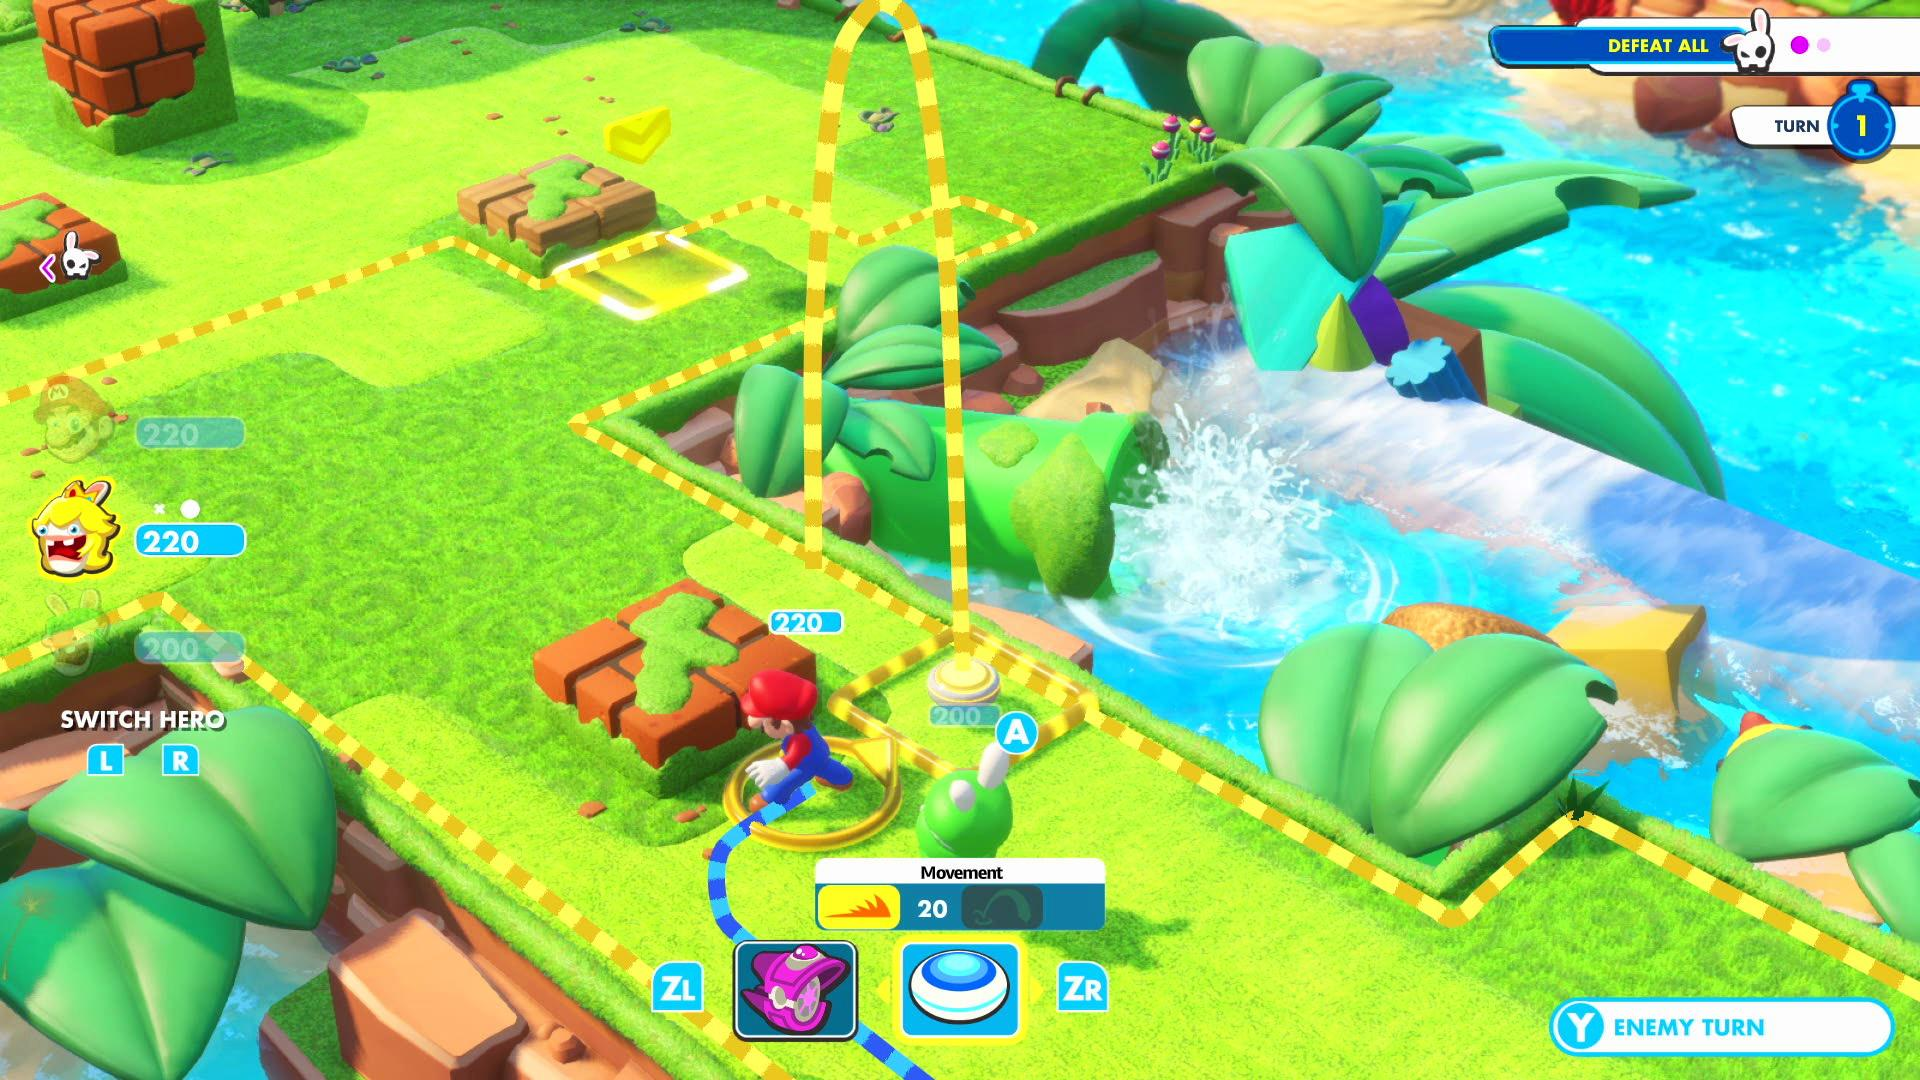 Mario and Rabbids Kingdom Battle, which arrives in August, is another huge exclusive for the Switch